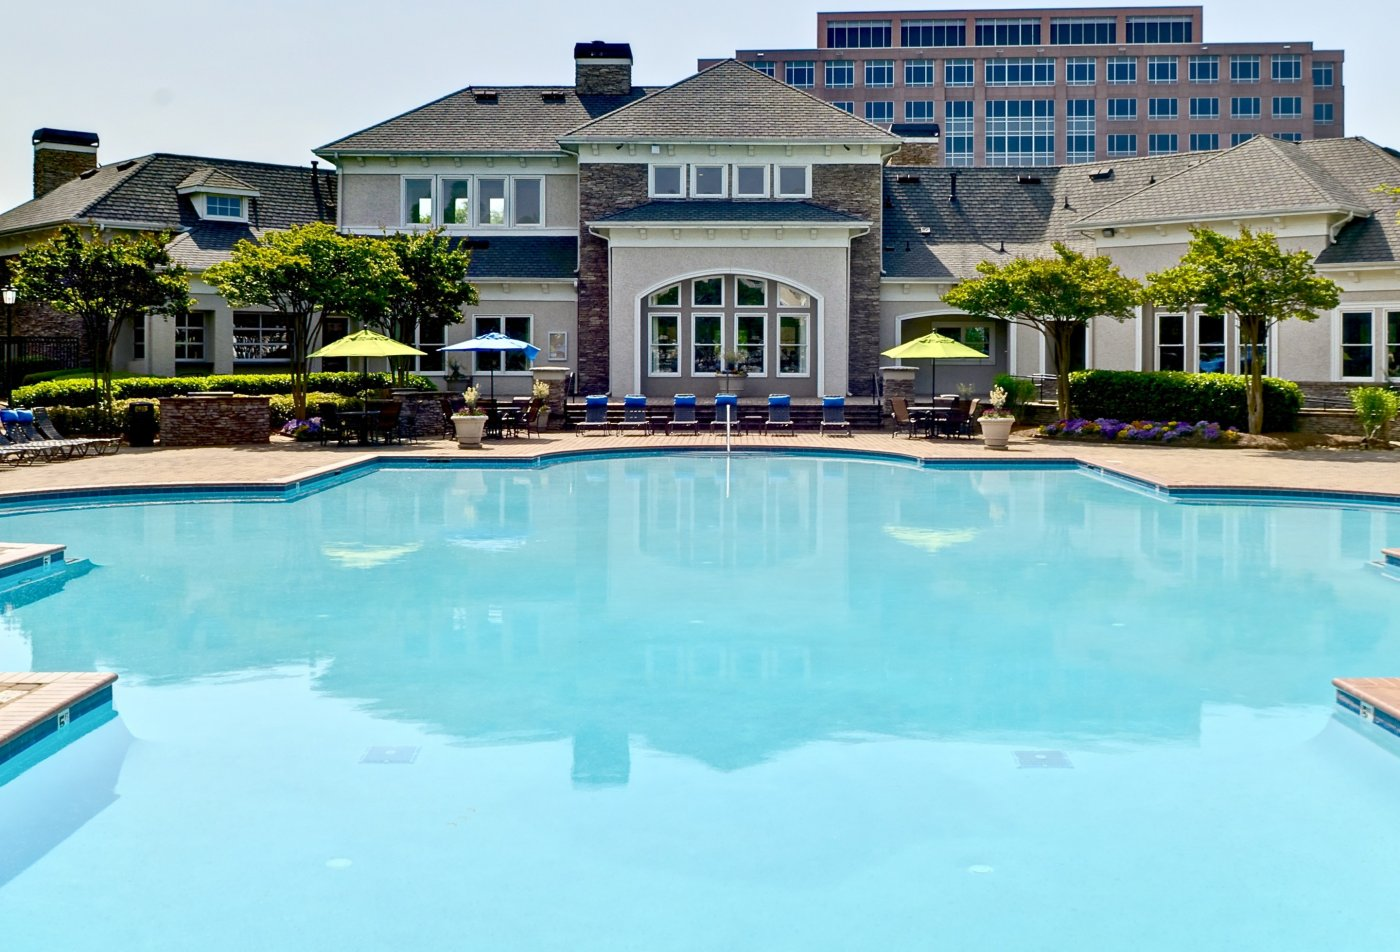 Swimming Pool | Apartment Homes in Atlanta, GA | Aspire Lenox Park